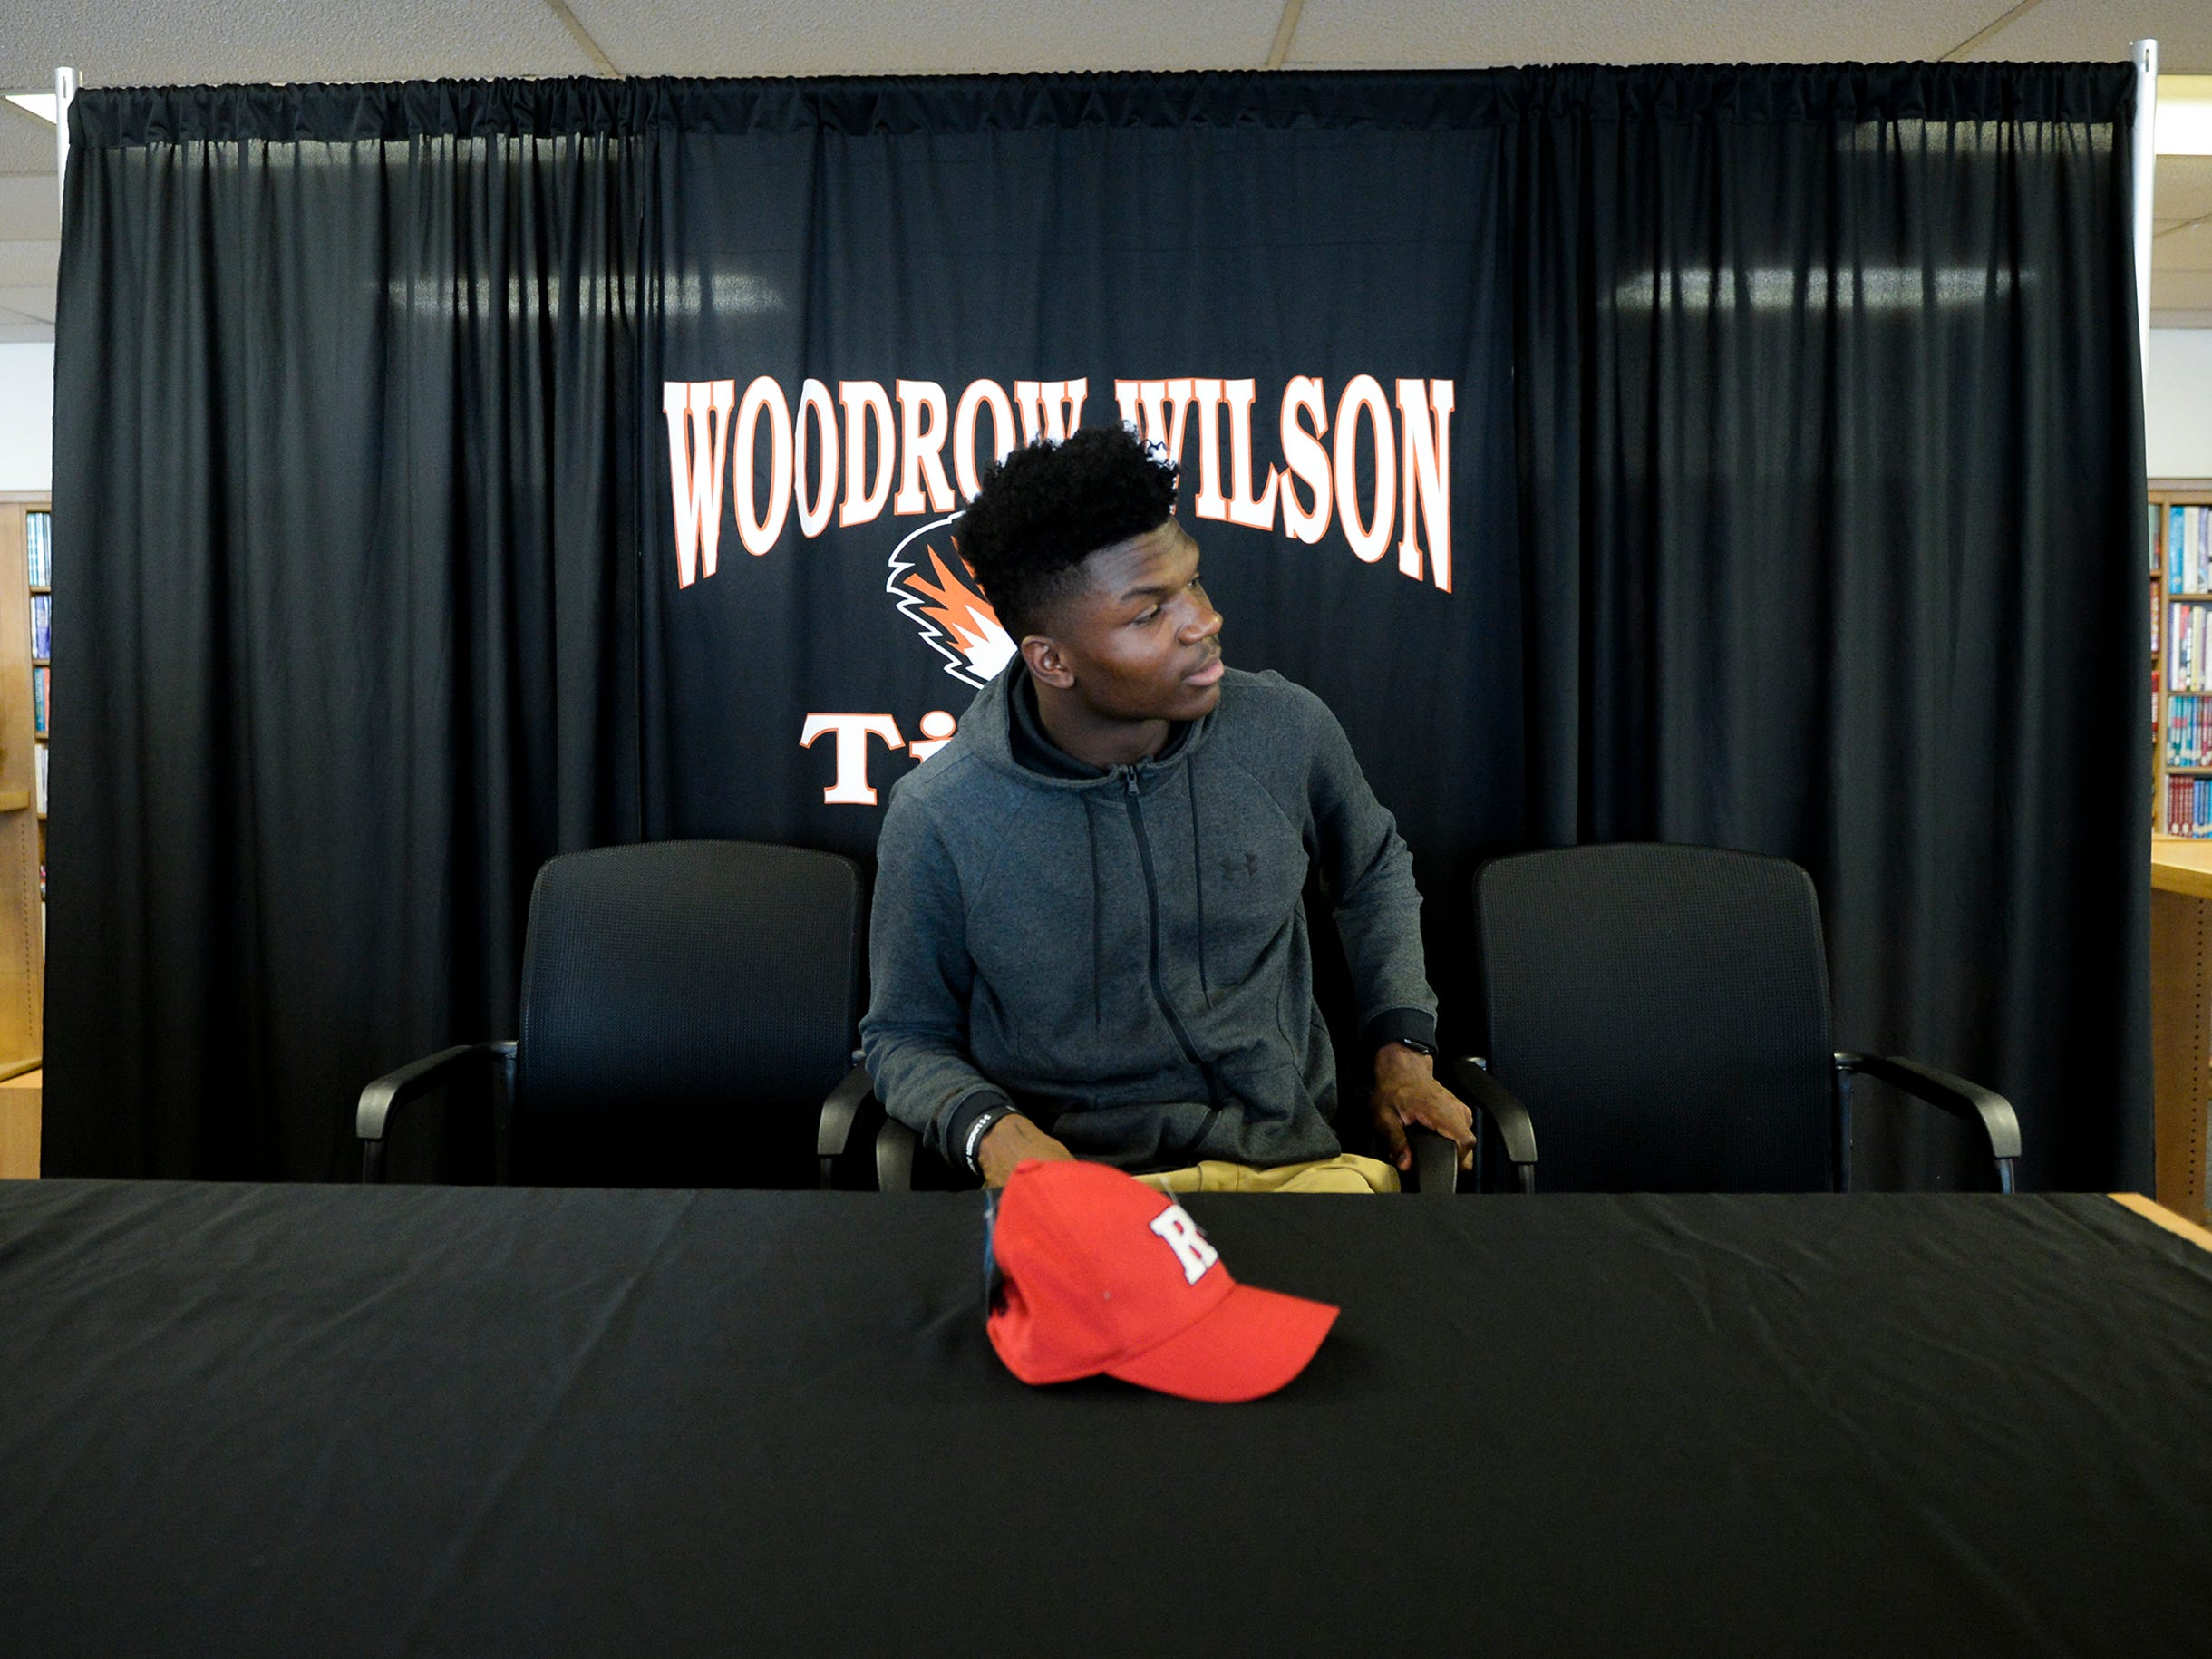 Woodrow Wilson wide receiver Stanley King will officially continue his football career at Rutgers University following an announcement Wednesday, Feb. 6, 2019 at Woodrow Wilson High School in Camden, N.J.